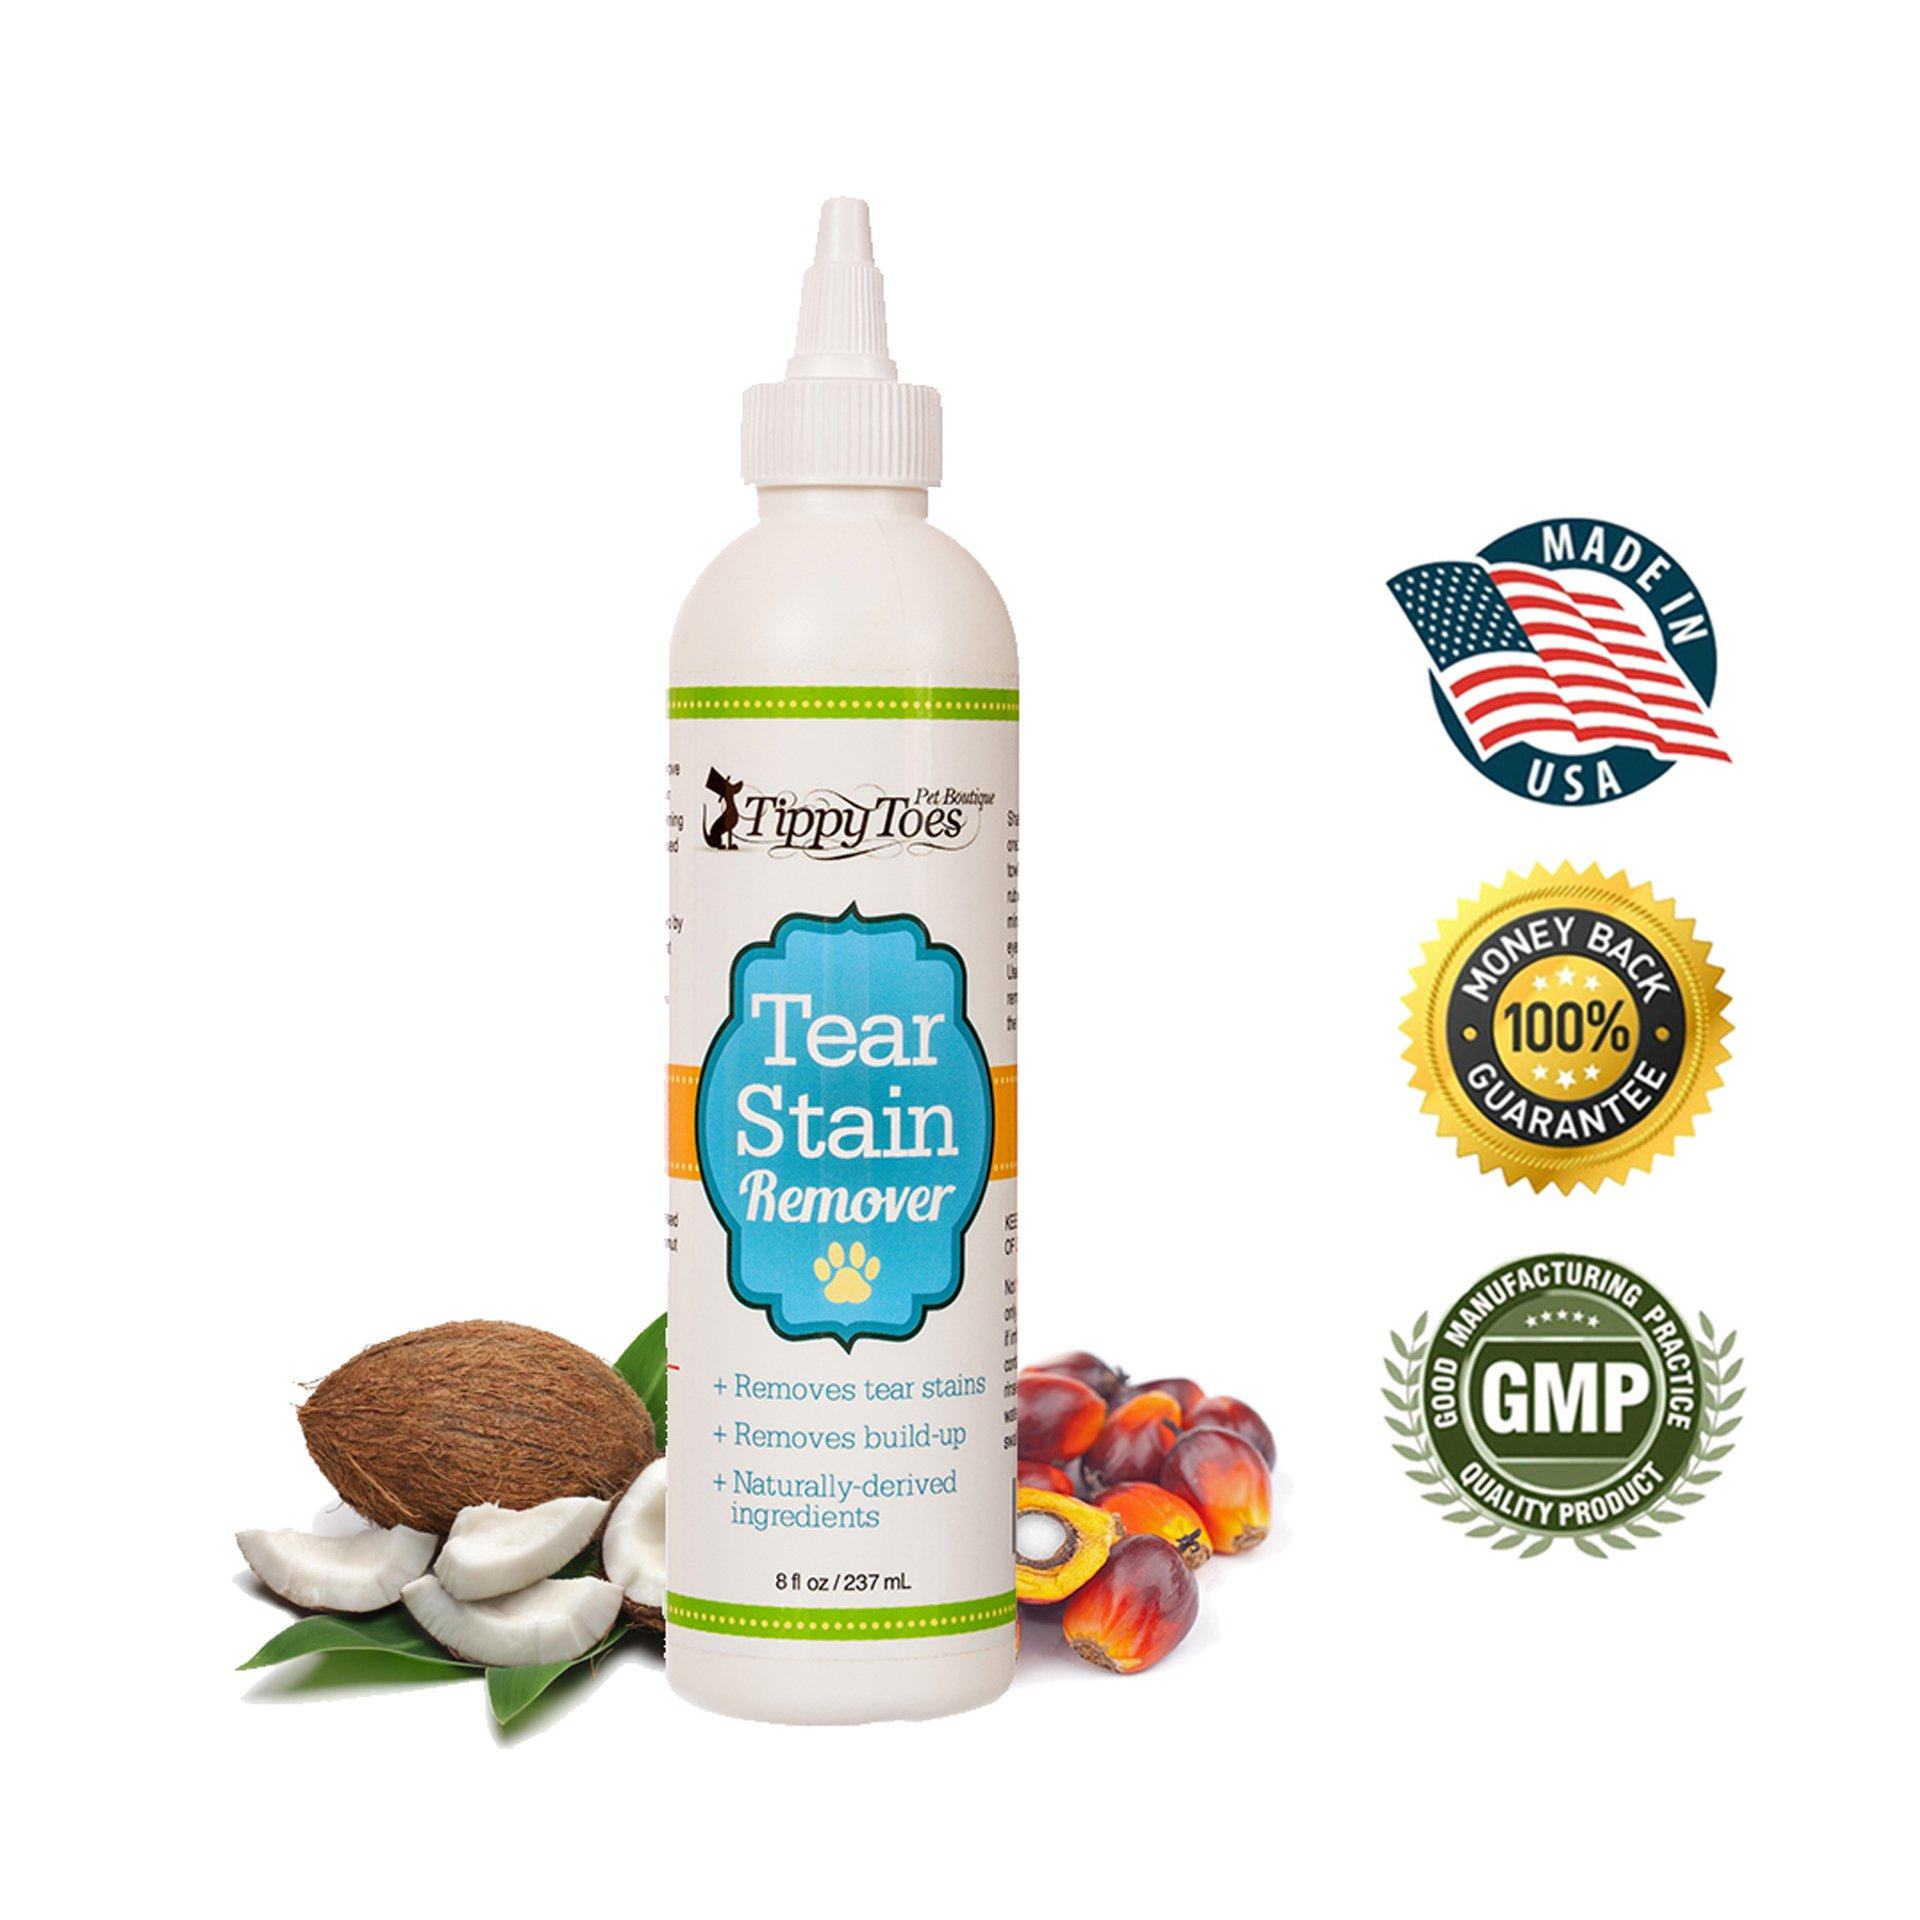 Tear Stain Remover for Dogs - Natural and Gentle on White Fur Our Premium Quality Treatment Cleans your Dogs Tears and Remove Eye Build Up Stains and Crust. For All Breeds And Sizes. Proudly USA Made